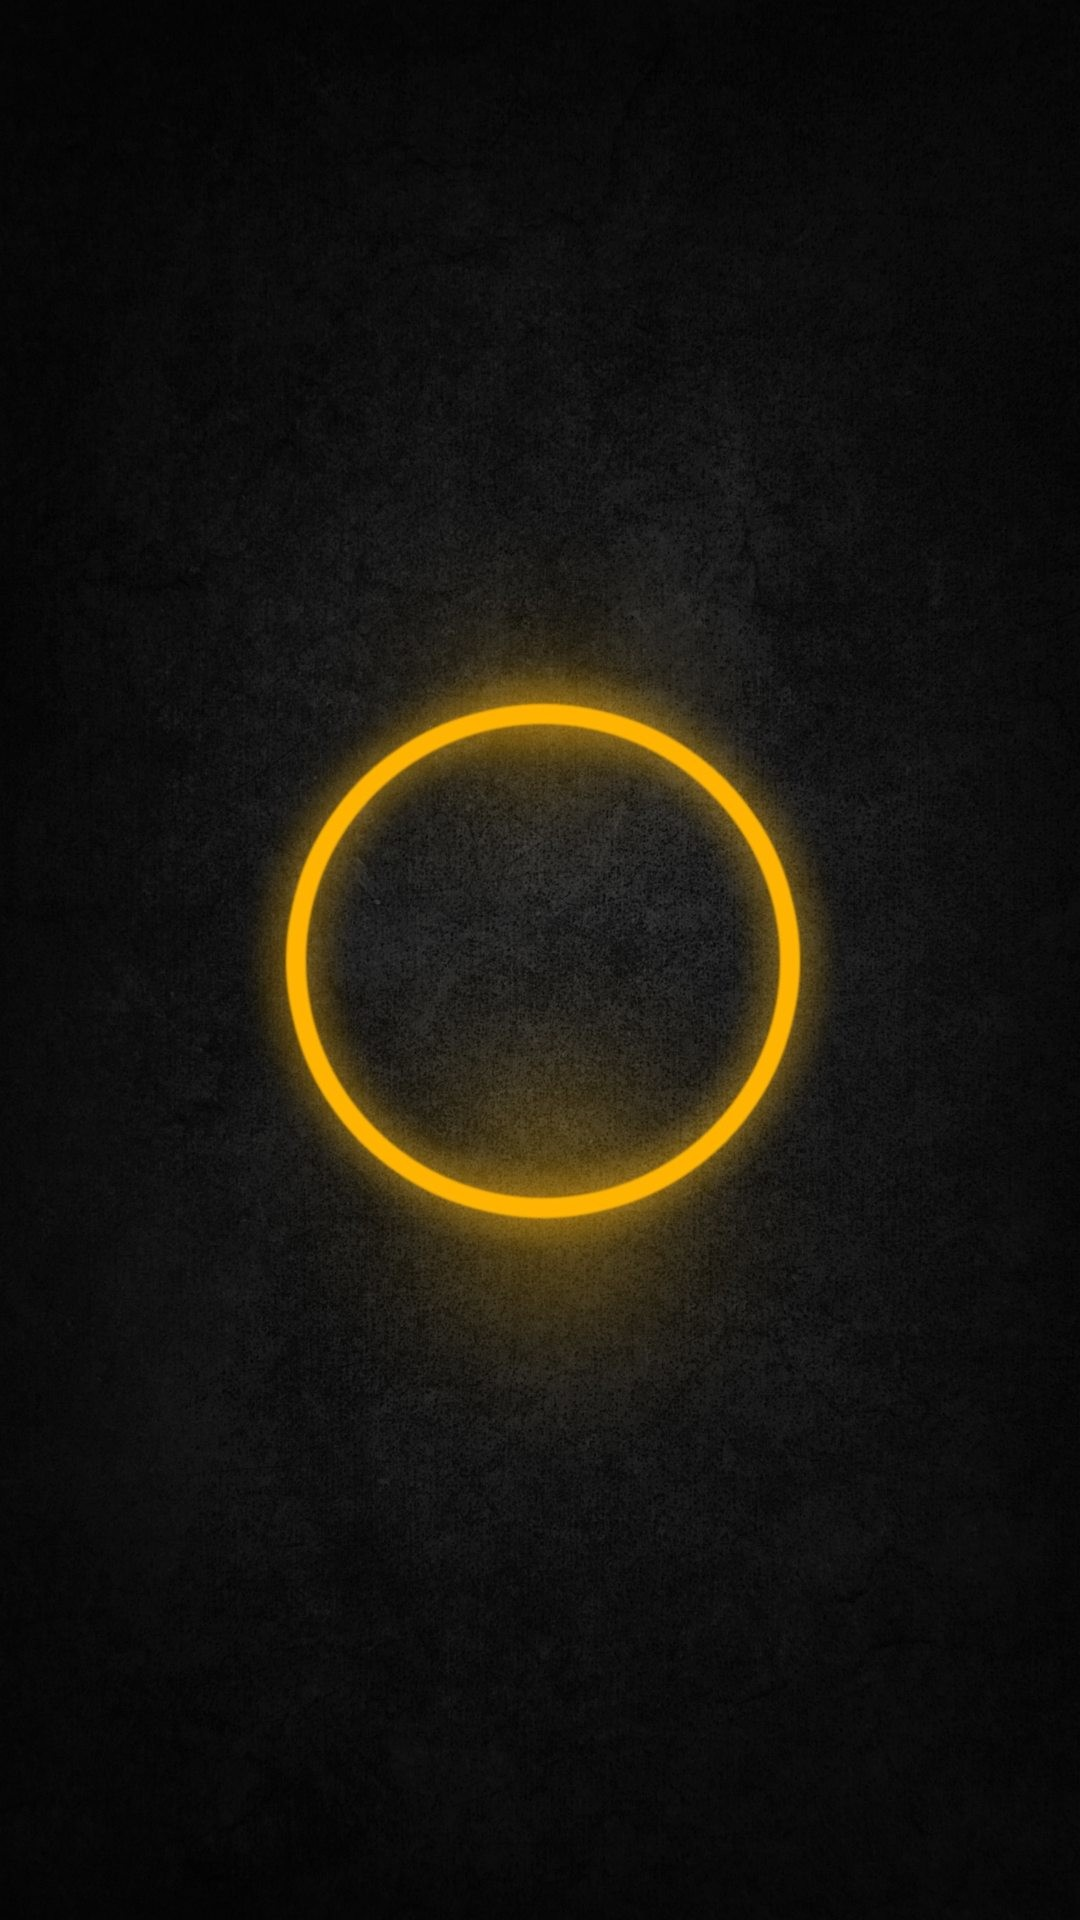 1080x1920 Wallpaper full hd 1080 x 1920 smartphone yellow circle abstract